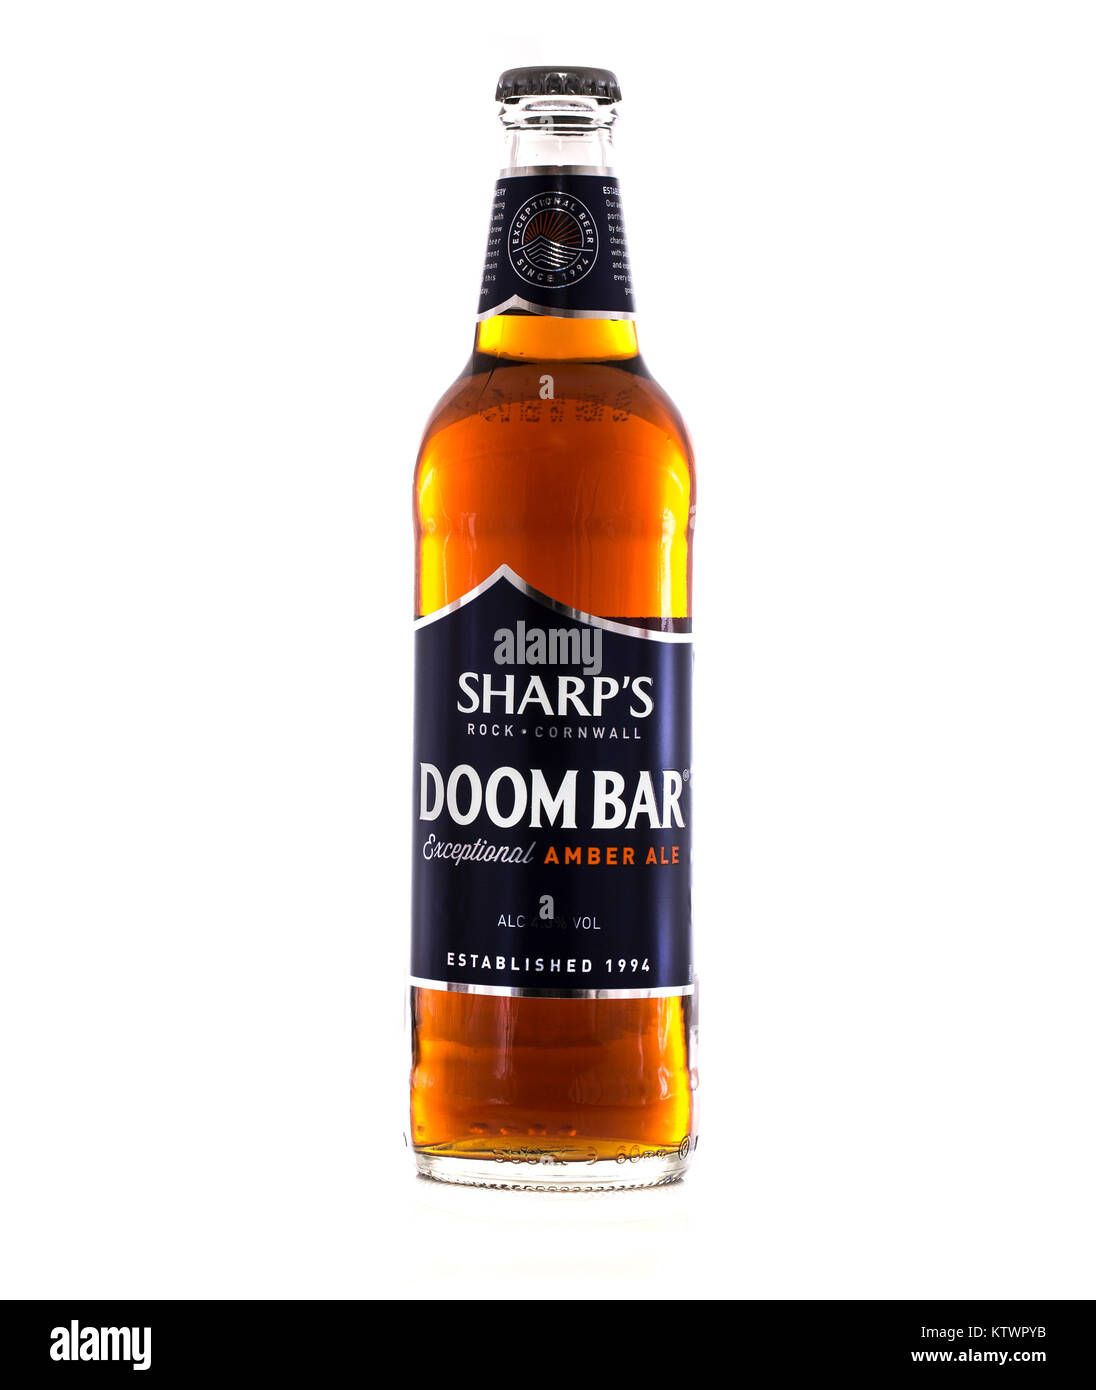 SWINDON, UK - DECEMBER 27, 2017: Bottle of Sharps Doombar Exceptional Amber Ale on a white background Stock Photo